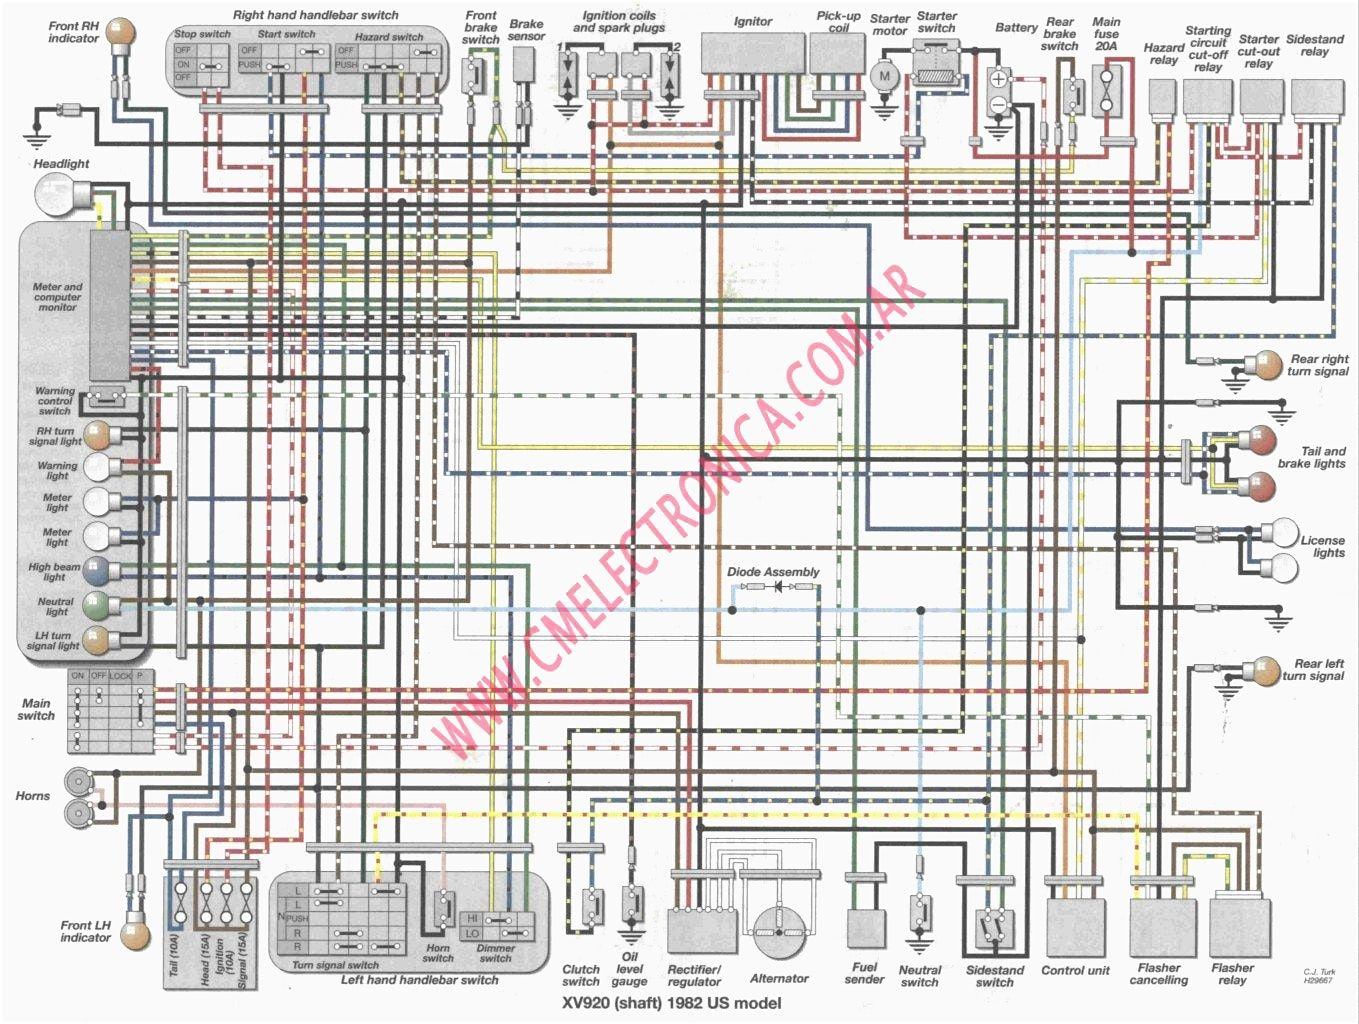 DIAGRAM] Subaru Xv 2012 Wiring Diagram FULL Version HD Quality Wiring  Diagram - FUSEDWIRING1D.TUTTOMODENAWEB.ITtuttomodenaweb.it